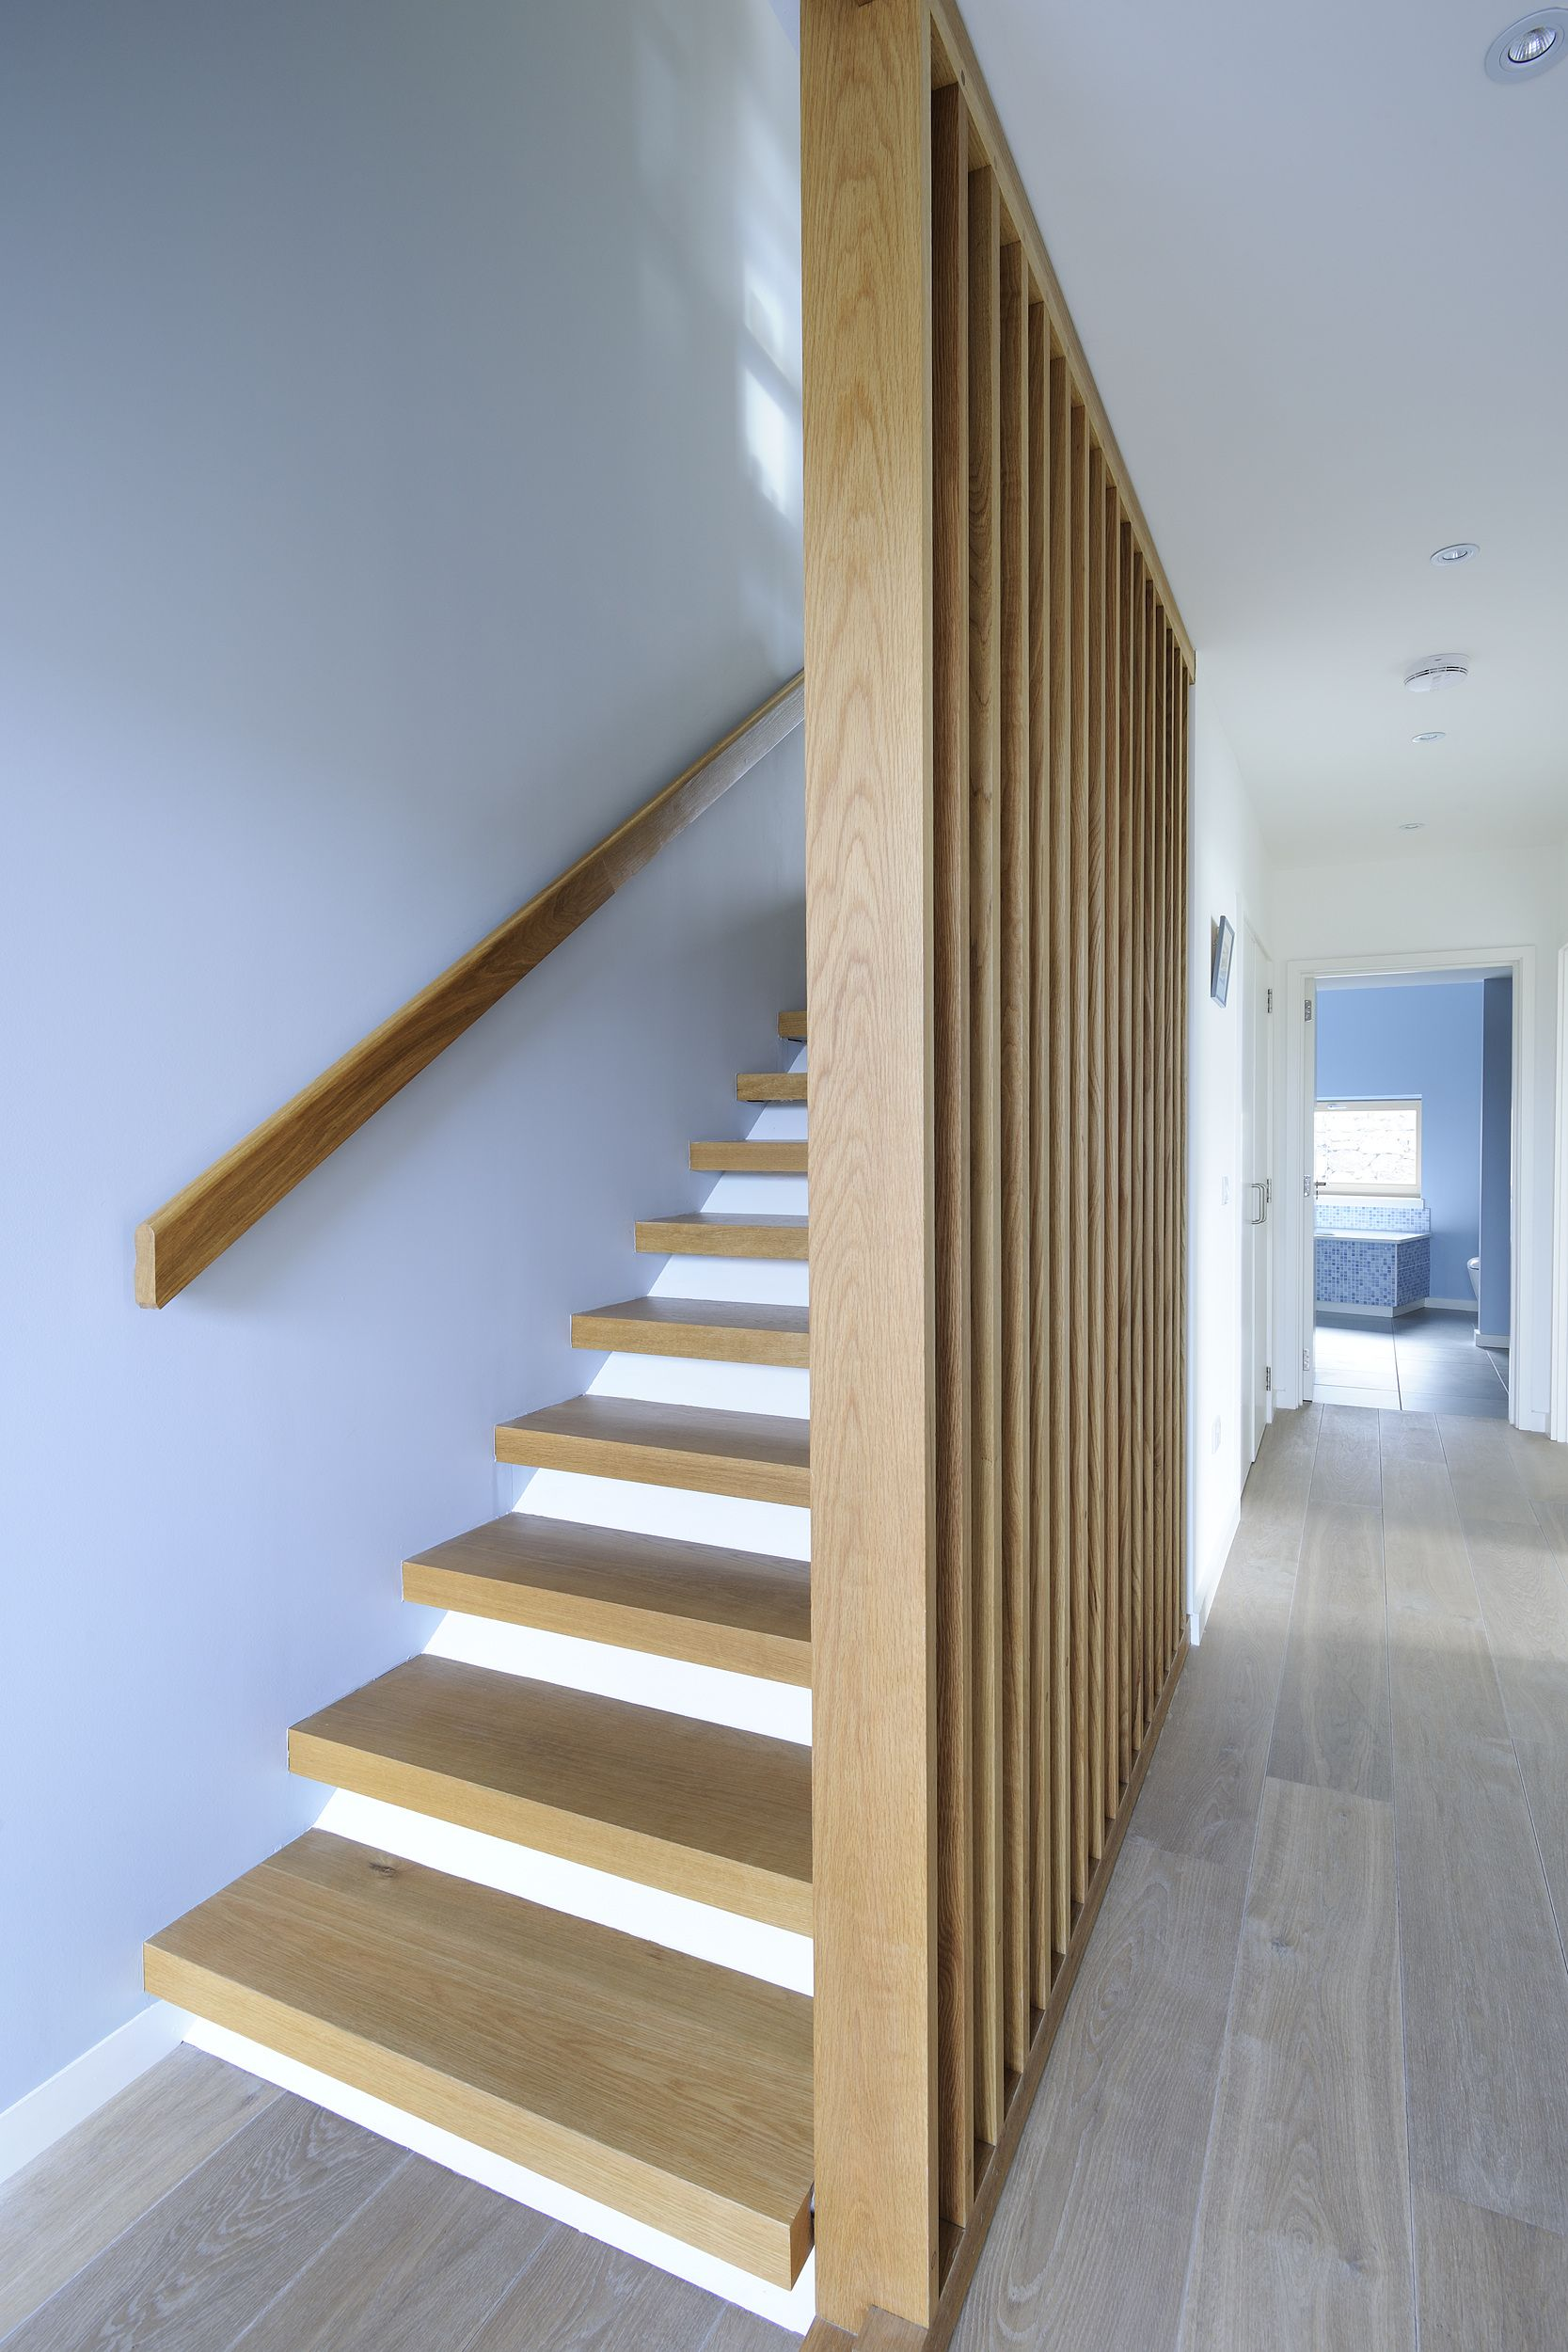 Holz Geländer Treppe Streichen Rhue Rural Design Architects Isle Of Skye And The Highlands